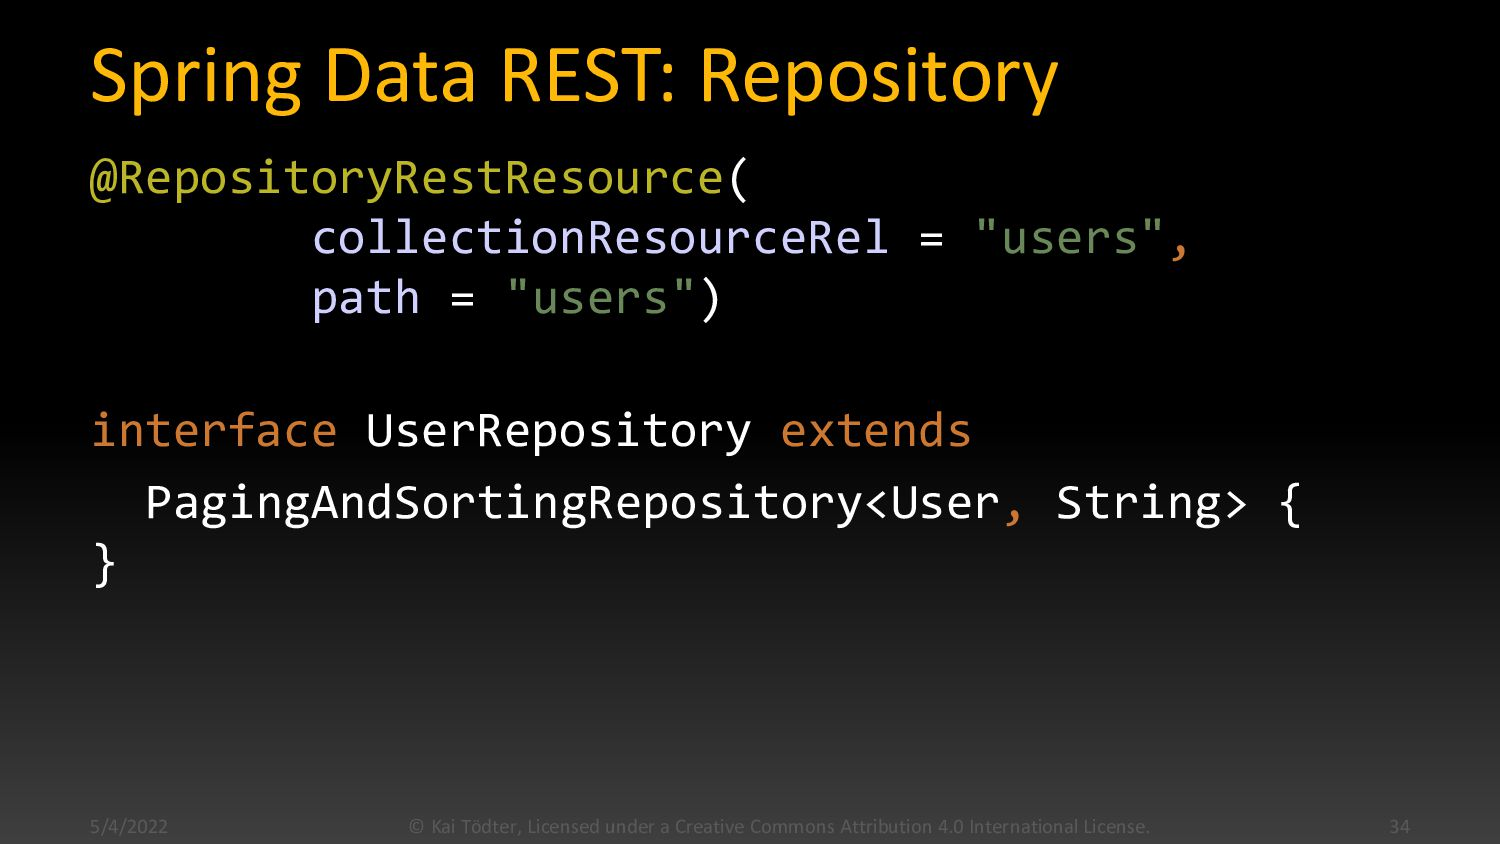 Spring Data Rest: Domain @Data @Entity @NoArgsC...